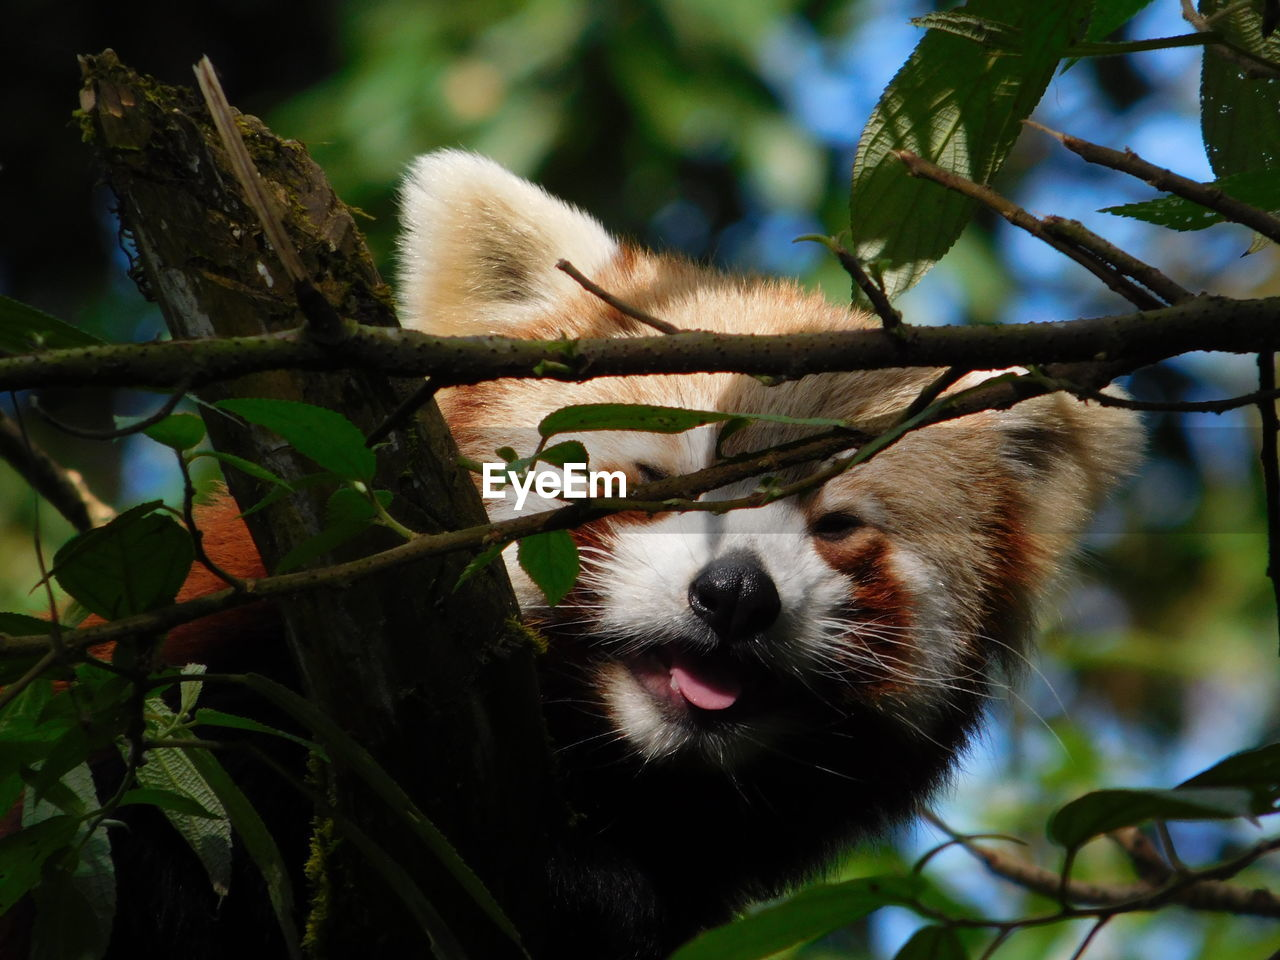 plant, animal themes, tree, mammal, animal, leaf, one animal, plant part, vertebrate, animal wildlife, nature, branch, focus on foreground, animals in the wild, no people, day, red panda, outdoors, growth, low angle view, whisker